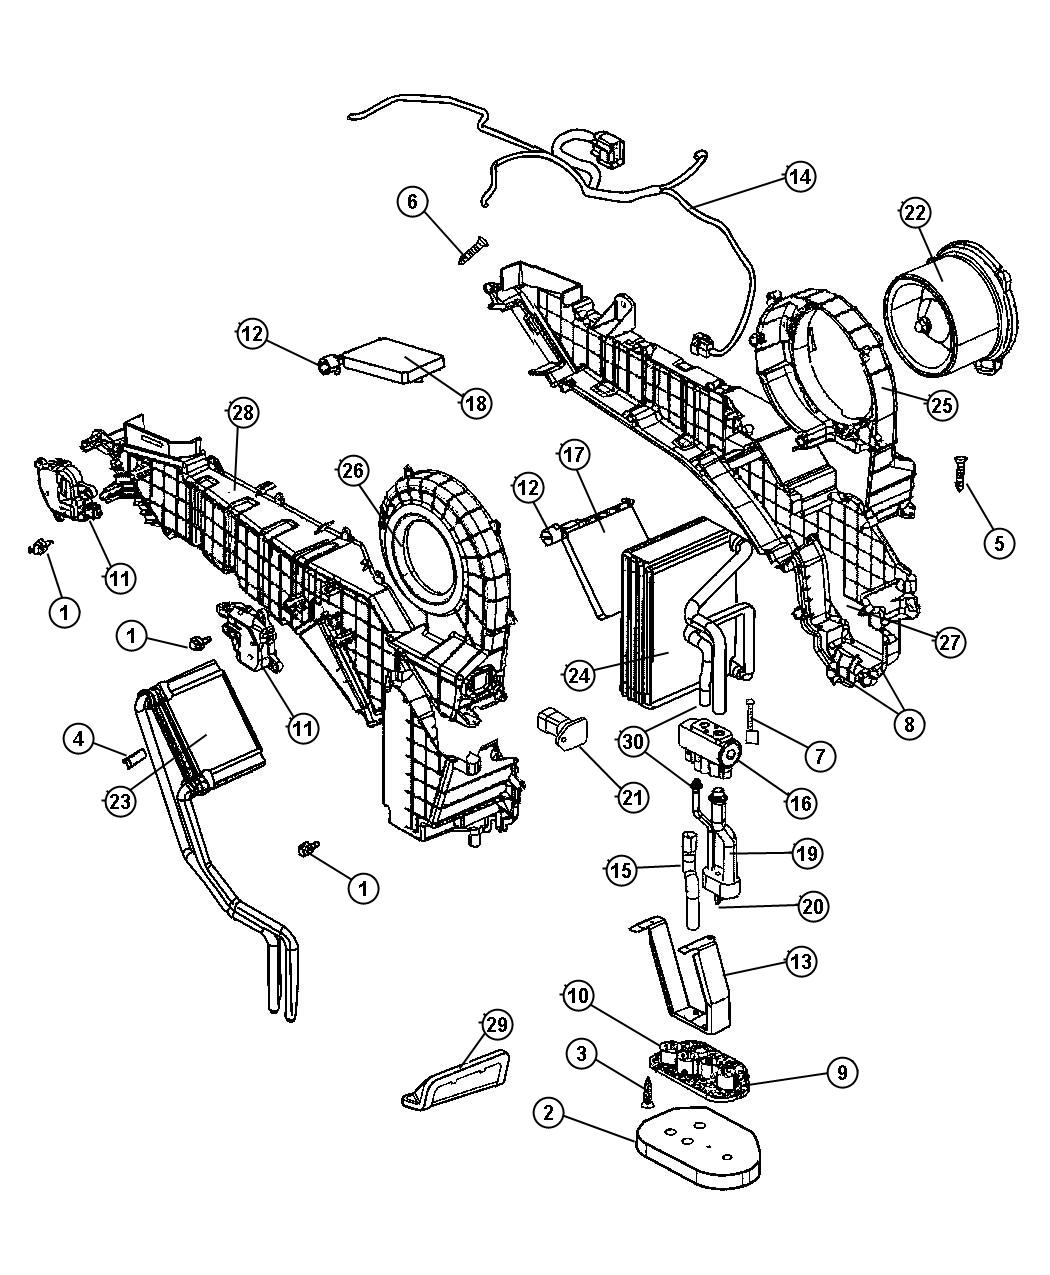 2006 Dodge Ram Heater Diagram Wiring Diagram Photos For Help Your